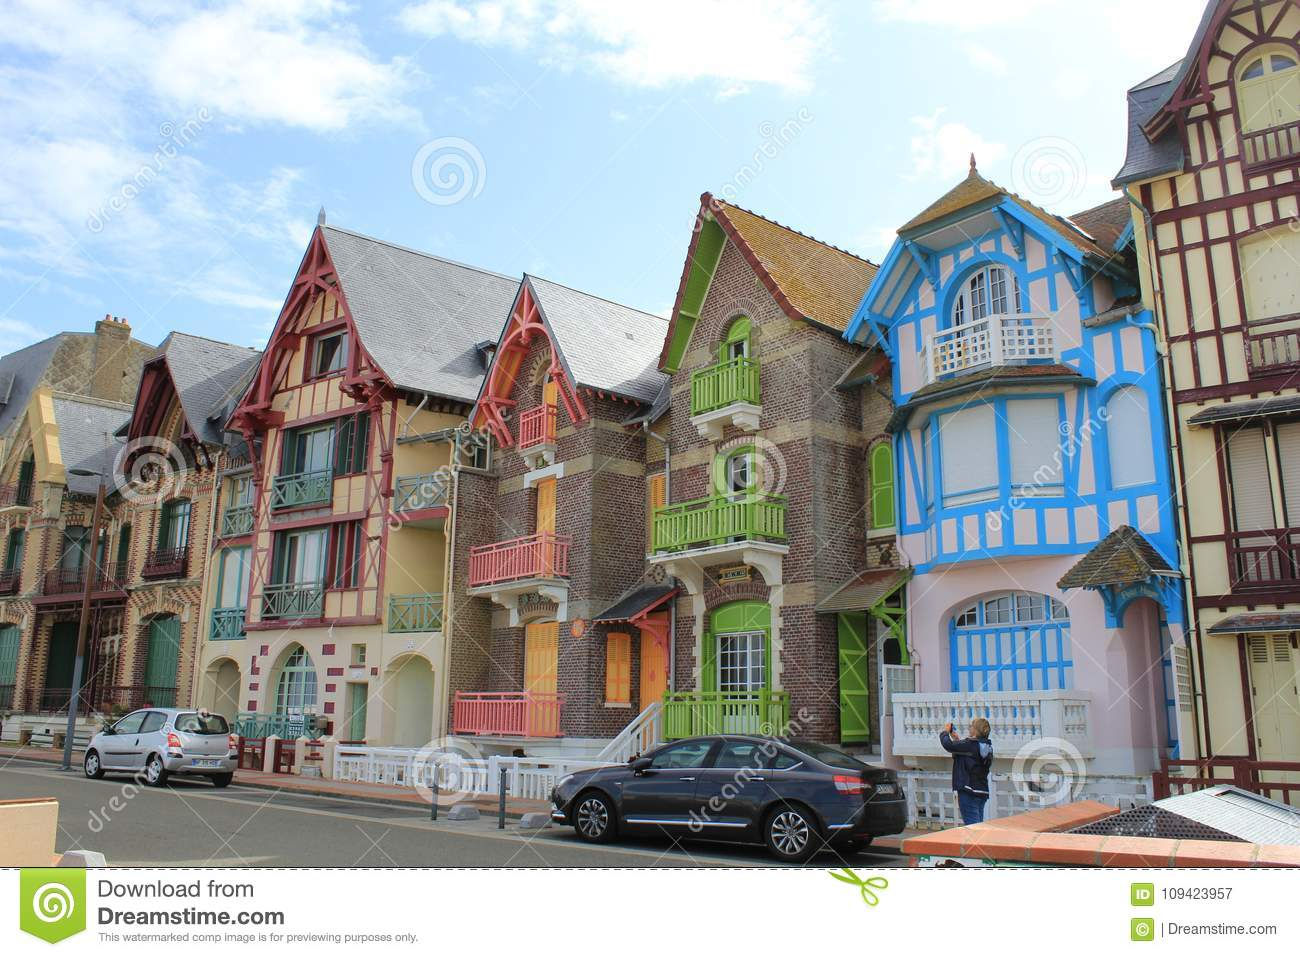 The ancient colorful english style houses at le treport near Dieppe, France